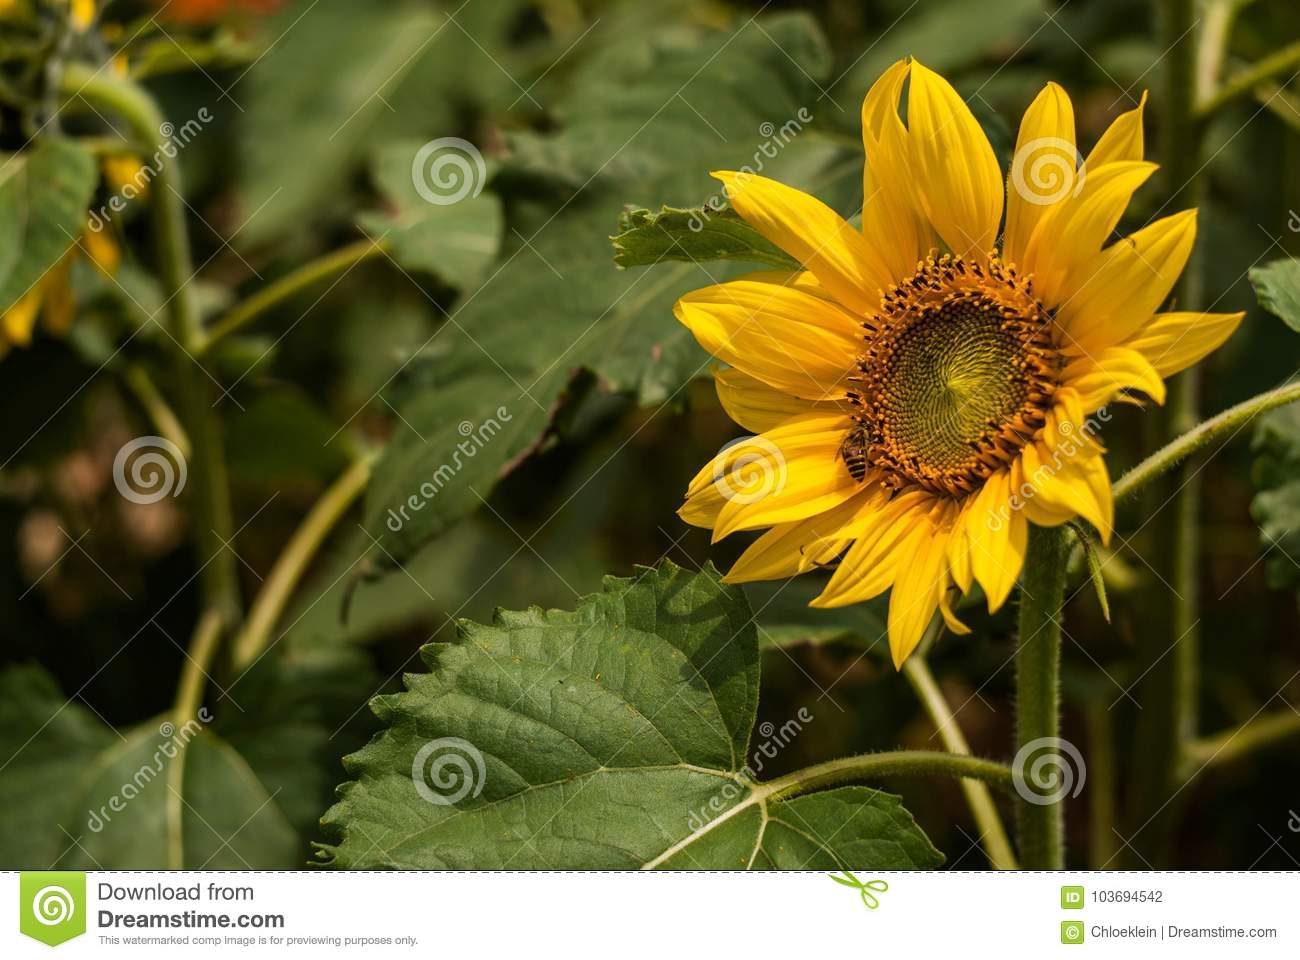 Sunflower In Spring Stock Photo Image Of Plant Grasslands 103694542